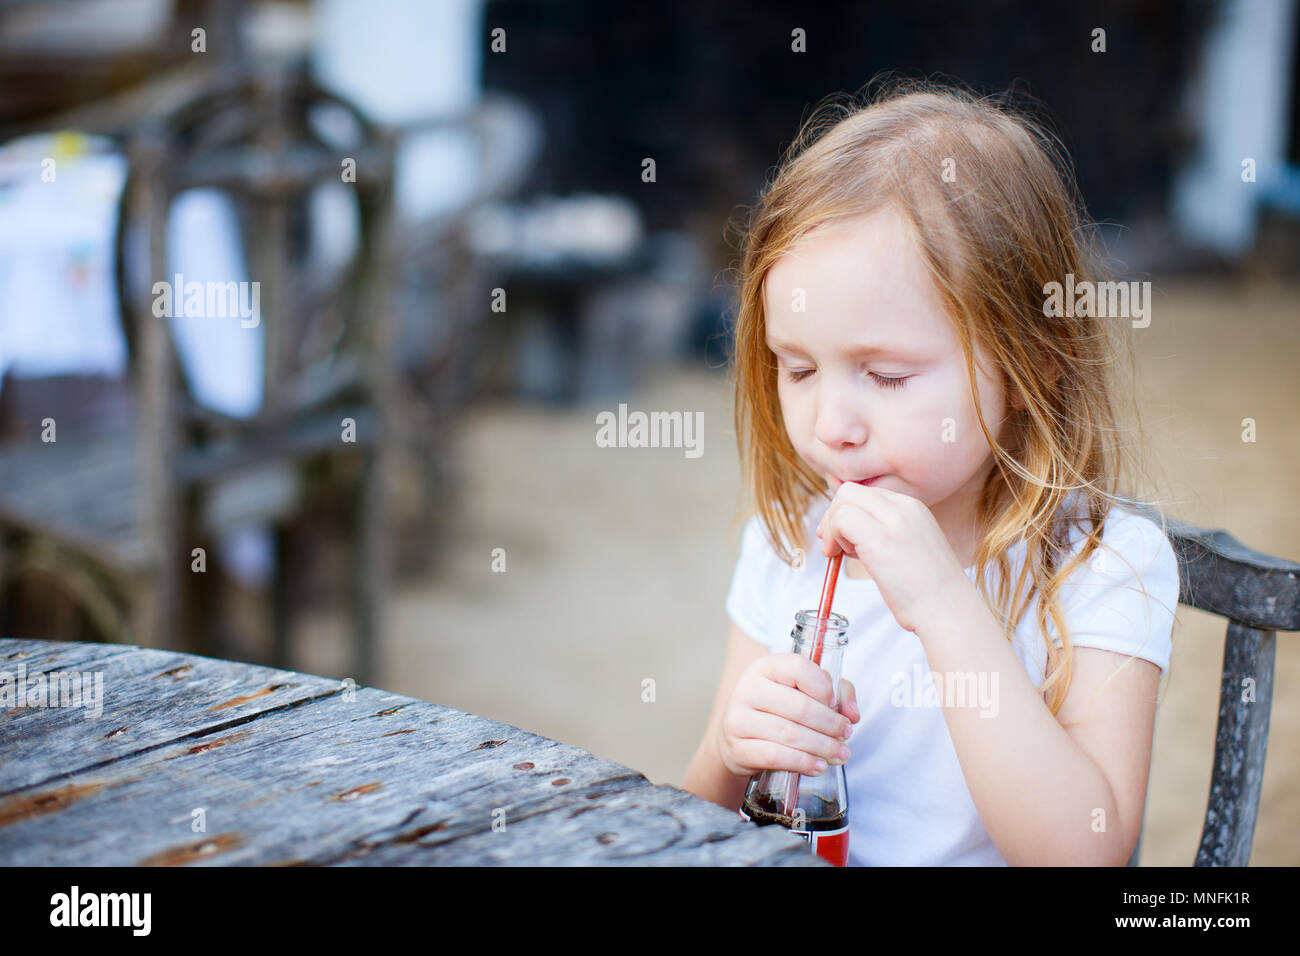 Adorable little girl drinking with a straw a soft drink - Stock Image